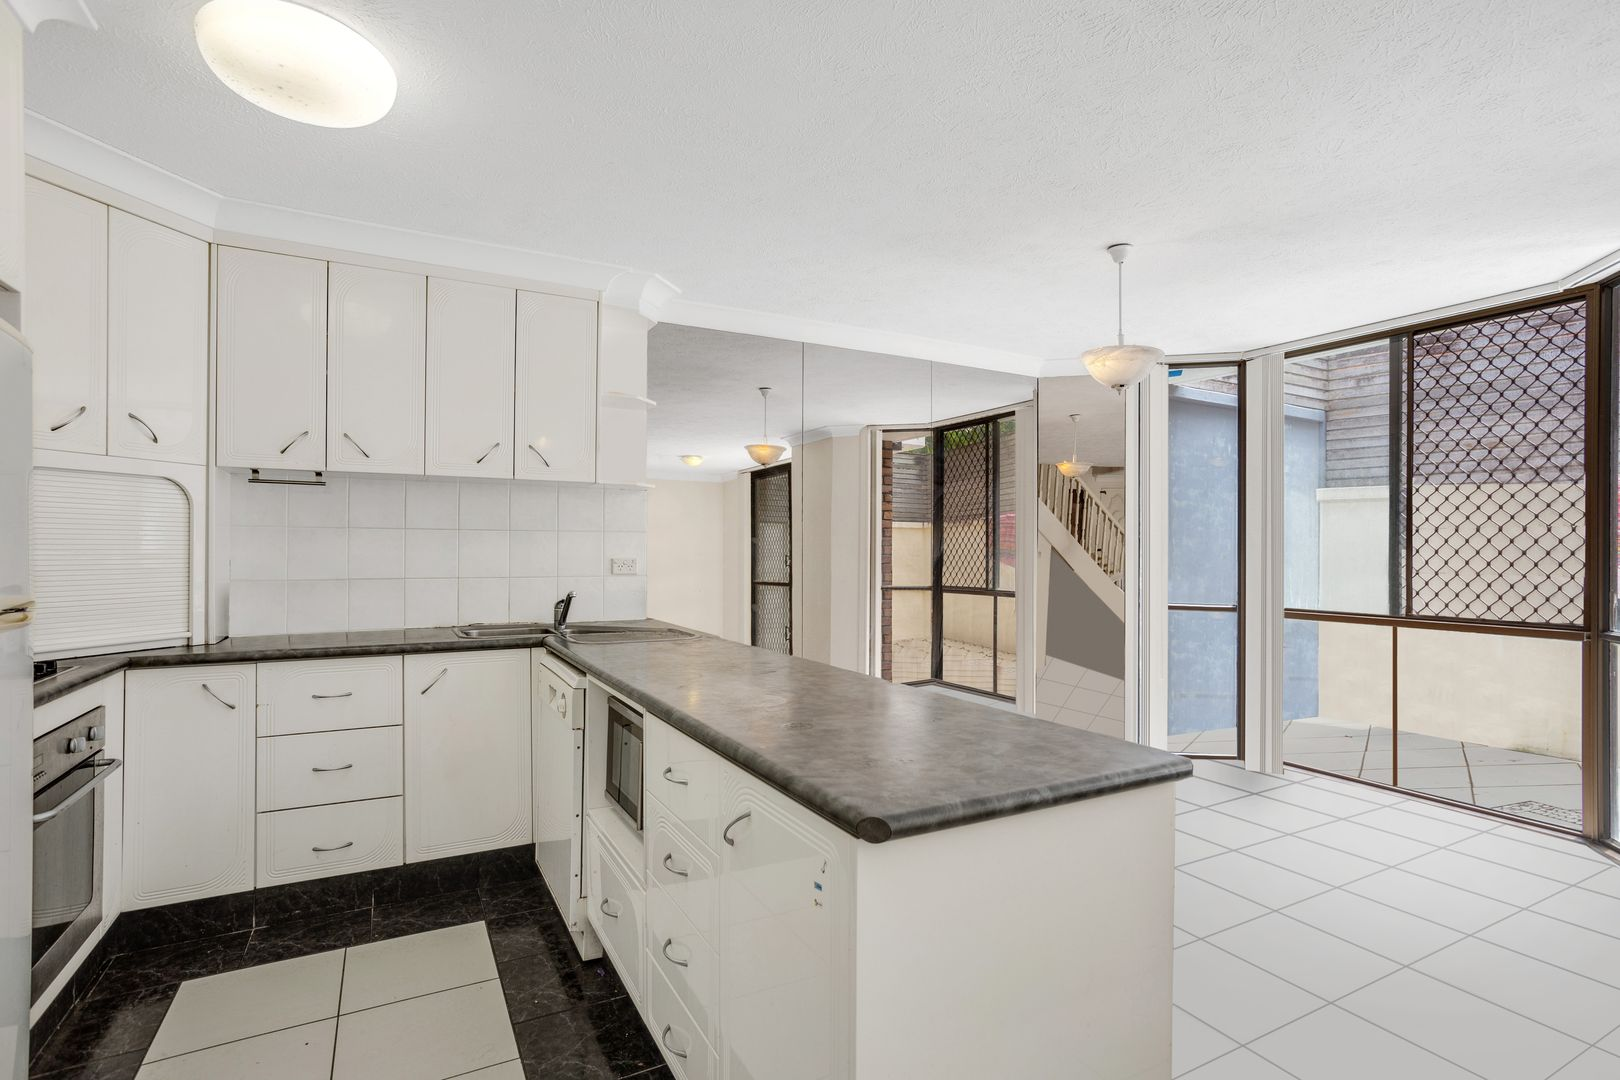 10/51 Bauer Street, Southport QLD 4215, Image 2